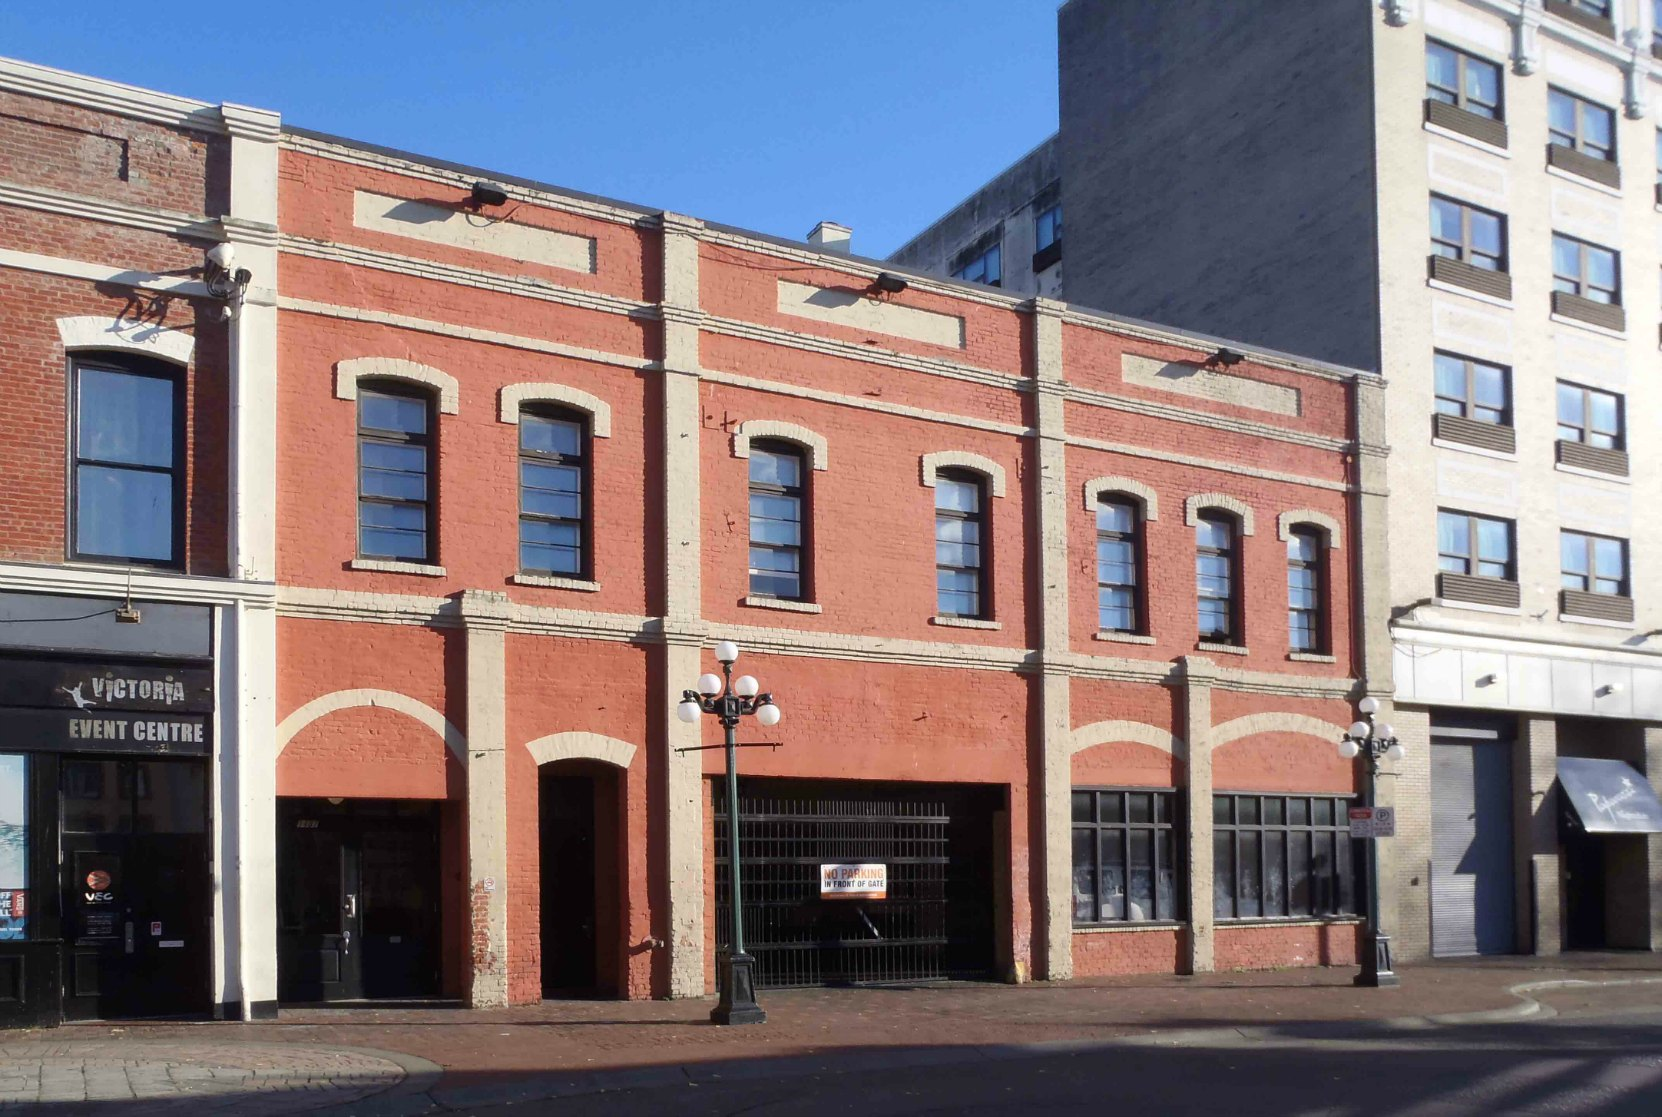 1407-1411 Broad Street, built in 1906 by John Meston & Company for its carriage making business. (photo_Temple Lodge No. 33 Historian)